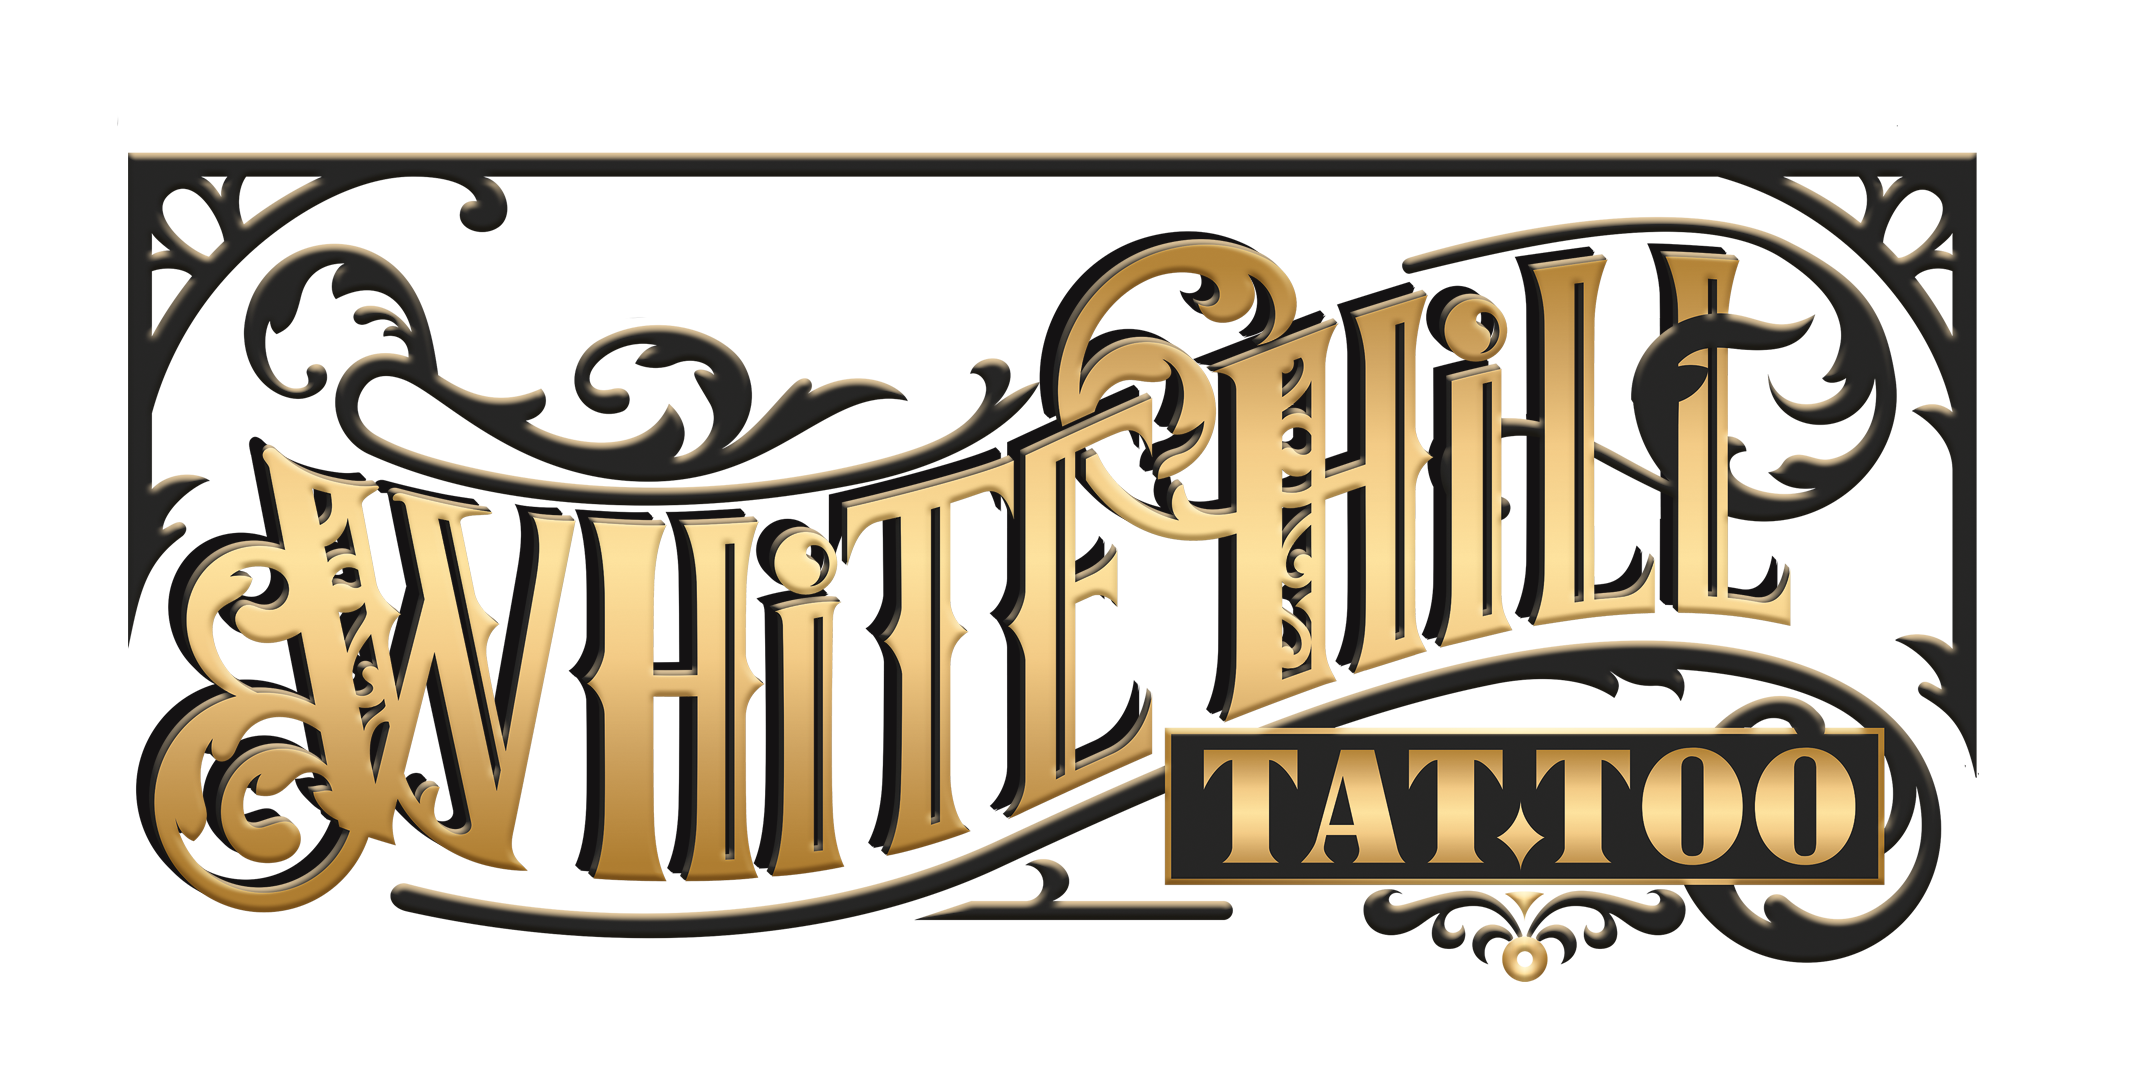 White Hill Tattoo